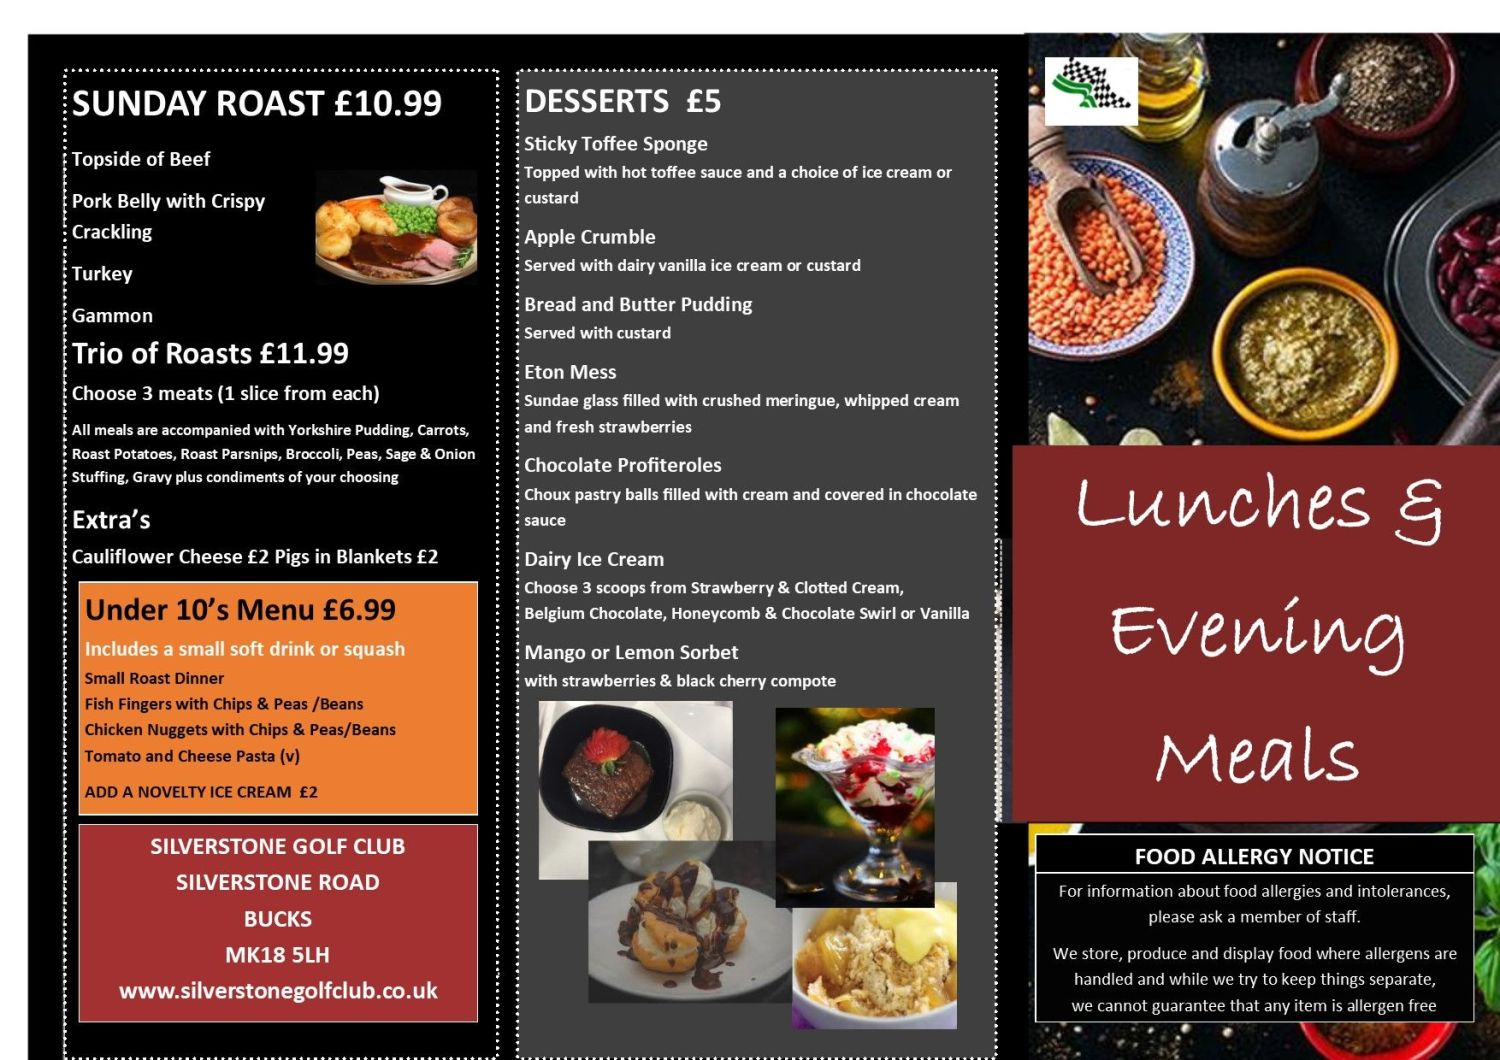 Menu Lunch & Evening 11th March 2019